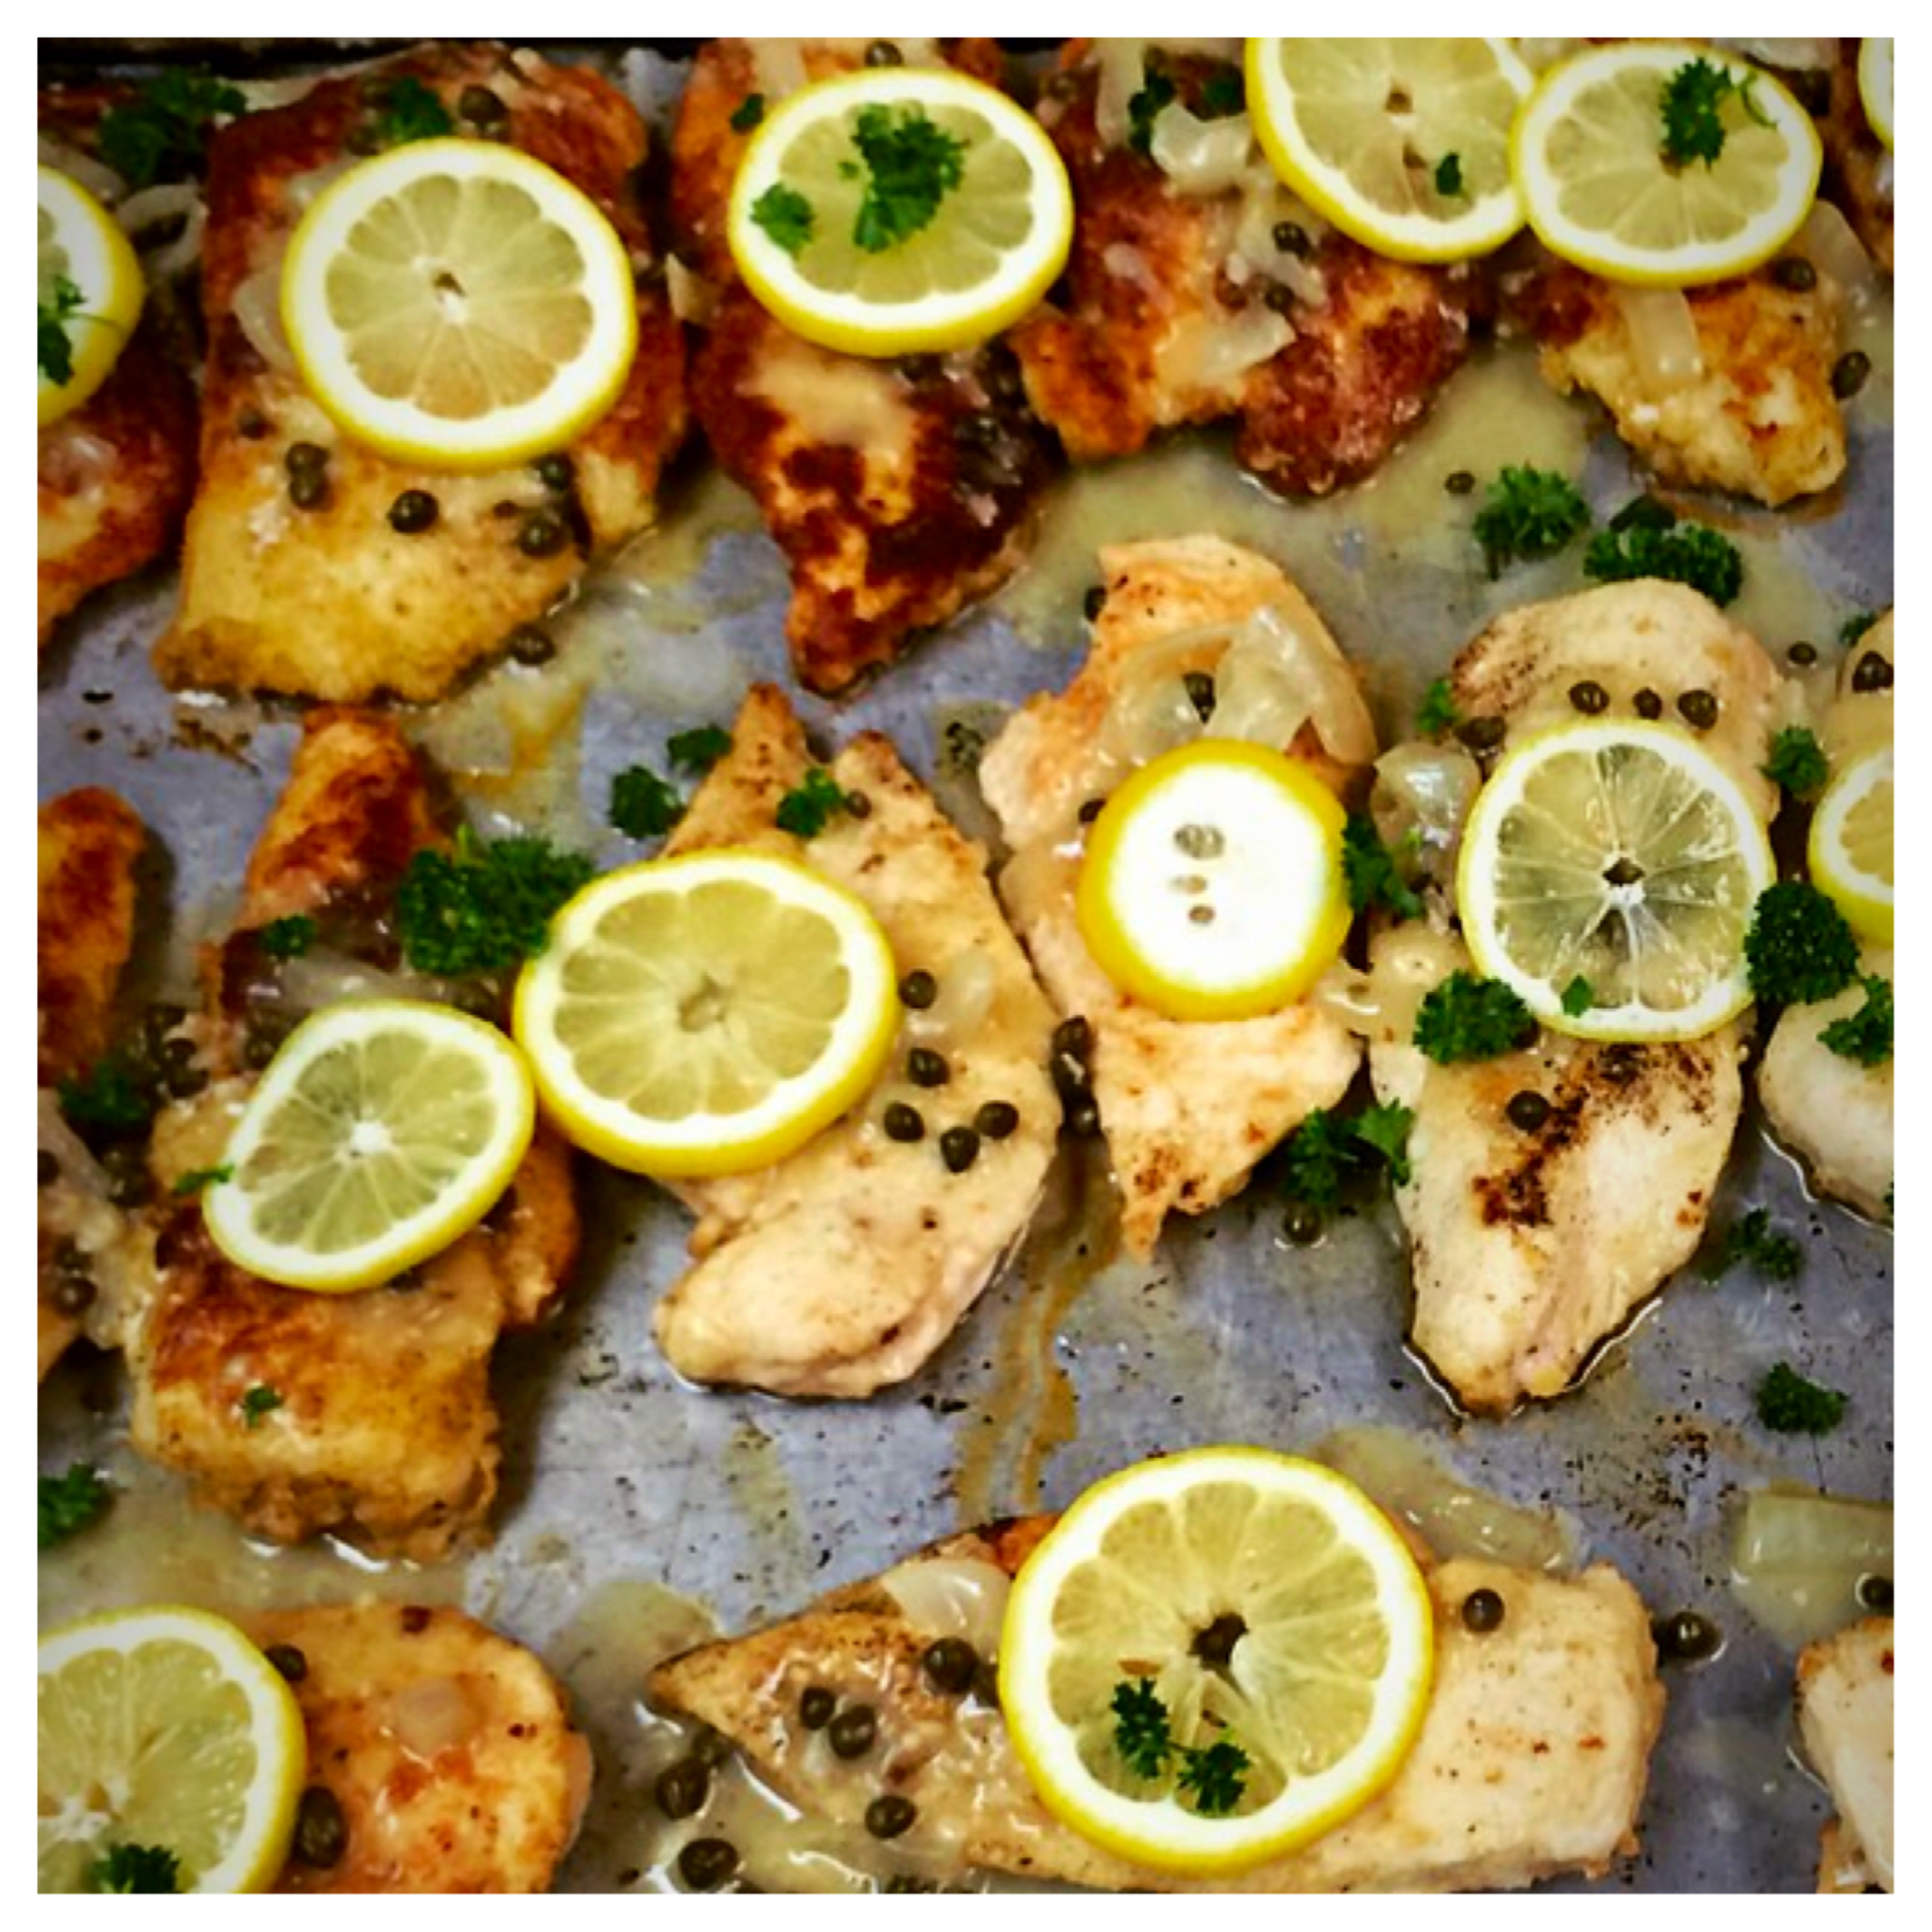 "I LOVE THE USE OF CAPERS, LEMON AND WHITE WINE TOGETHER.  THIS IS A GRET DISH FOR THE SPRING TIME.  THE FRESH AND VIBRANT FLAVORS AND COLORS ARE A PERFECT DISH FOR THE FIREHOUSE. AND IN THE INFAMOUS WORDS OF BEAVIS FROM ""BEAVIS AND BUTTHEAD"".......CHICKEN PICCATA!"